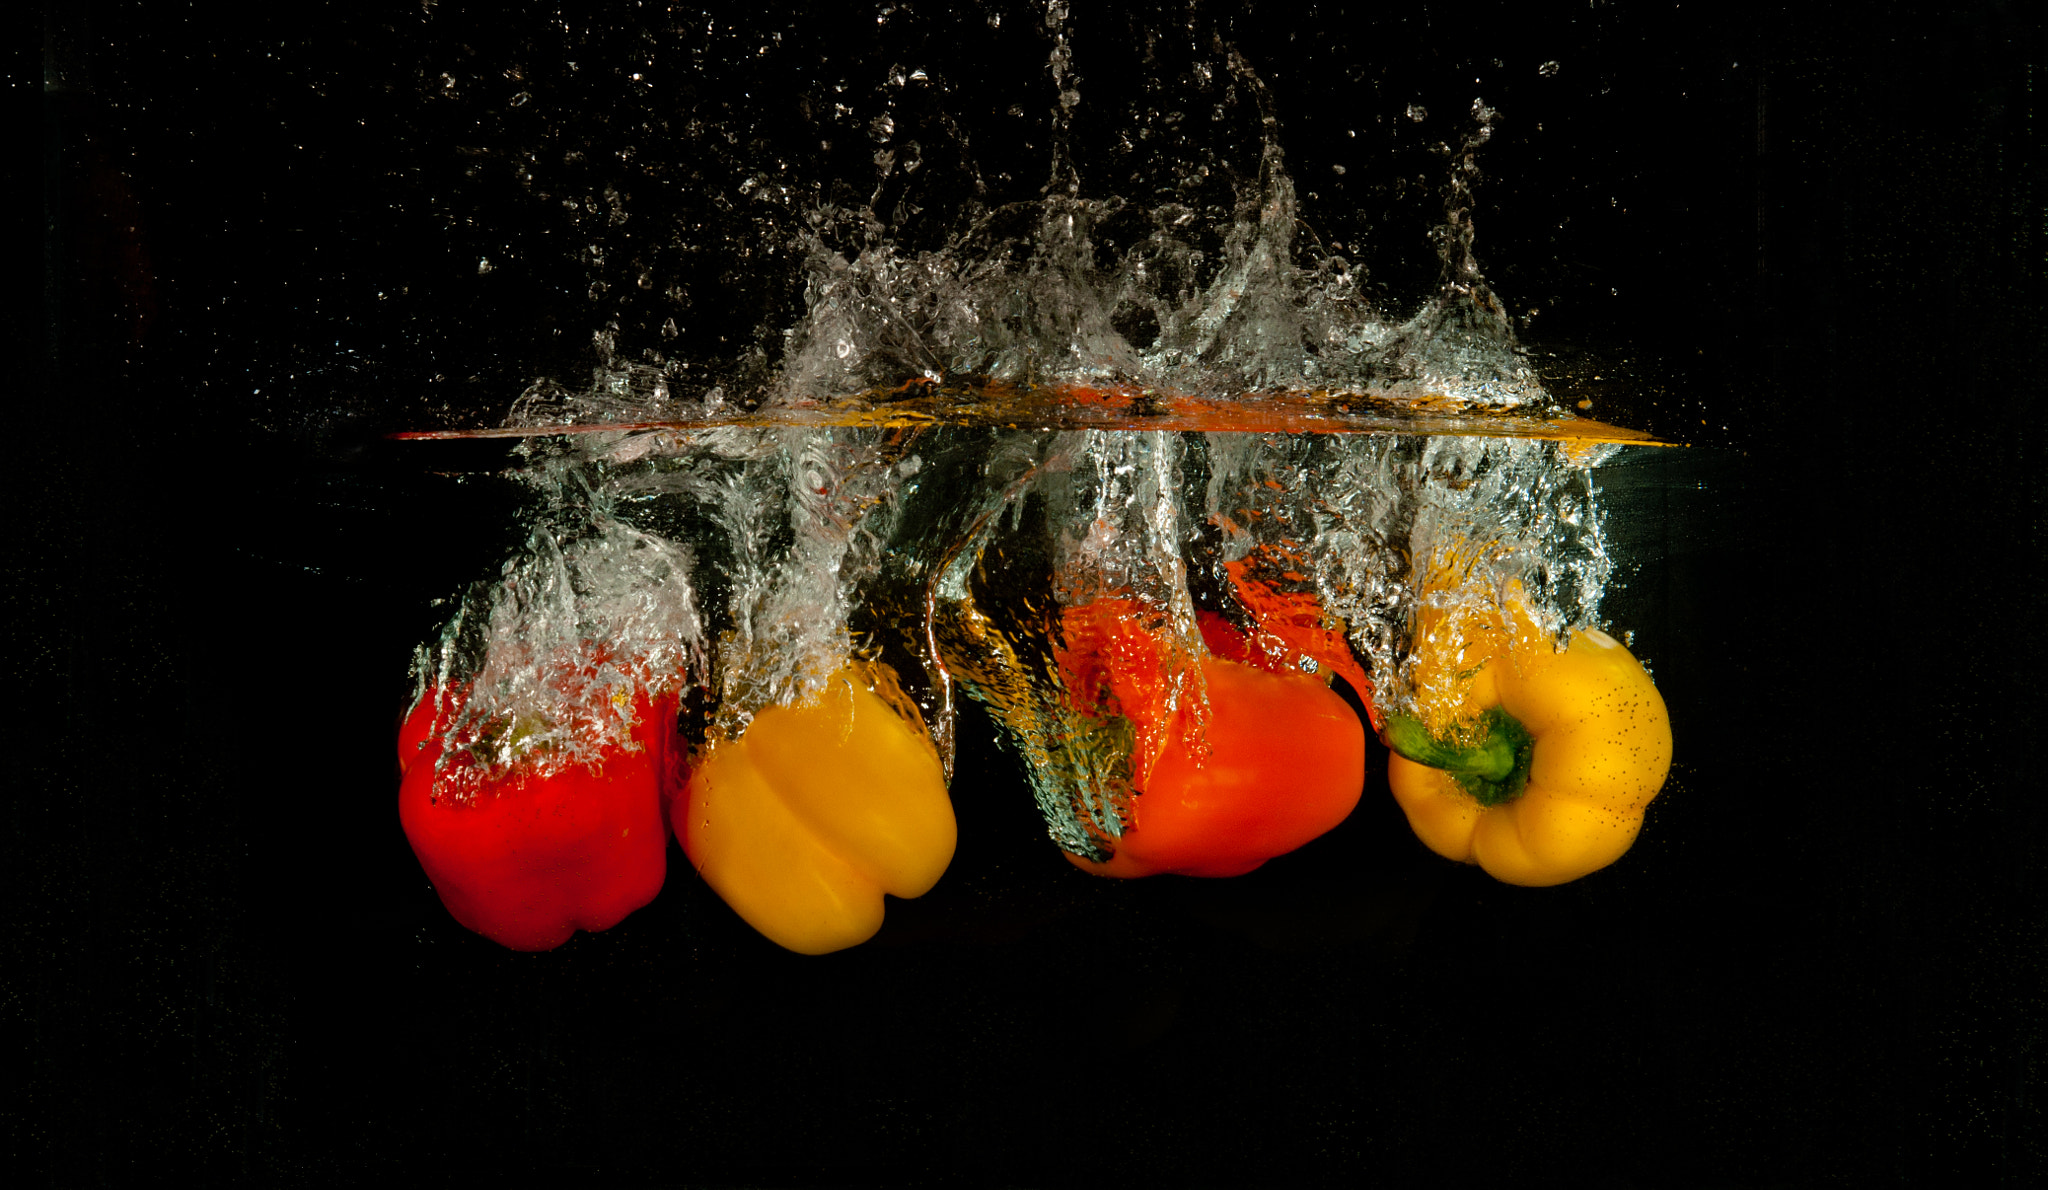 Photograph Mixed Veggies by Mark Hauch on 500px